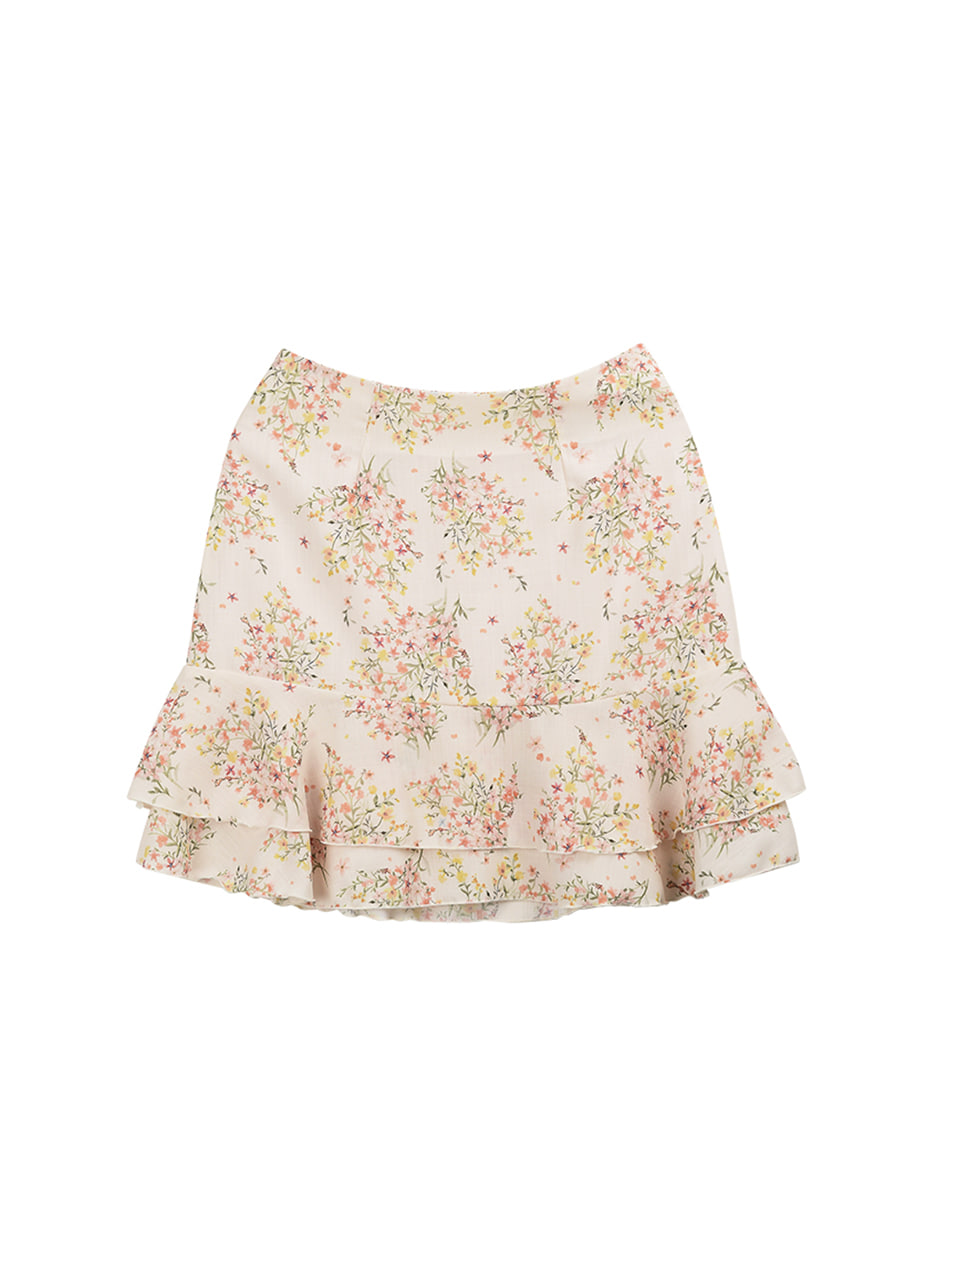 Flower frill layered skirt_apricot